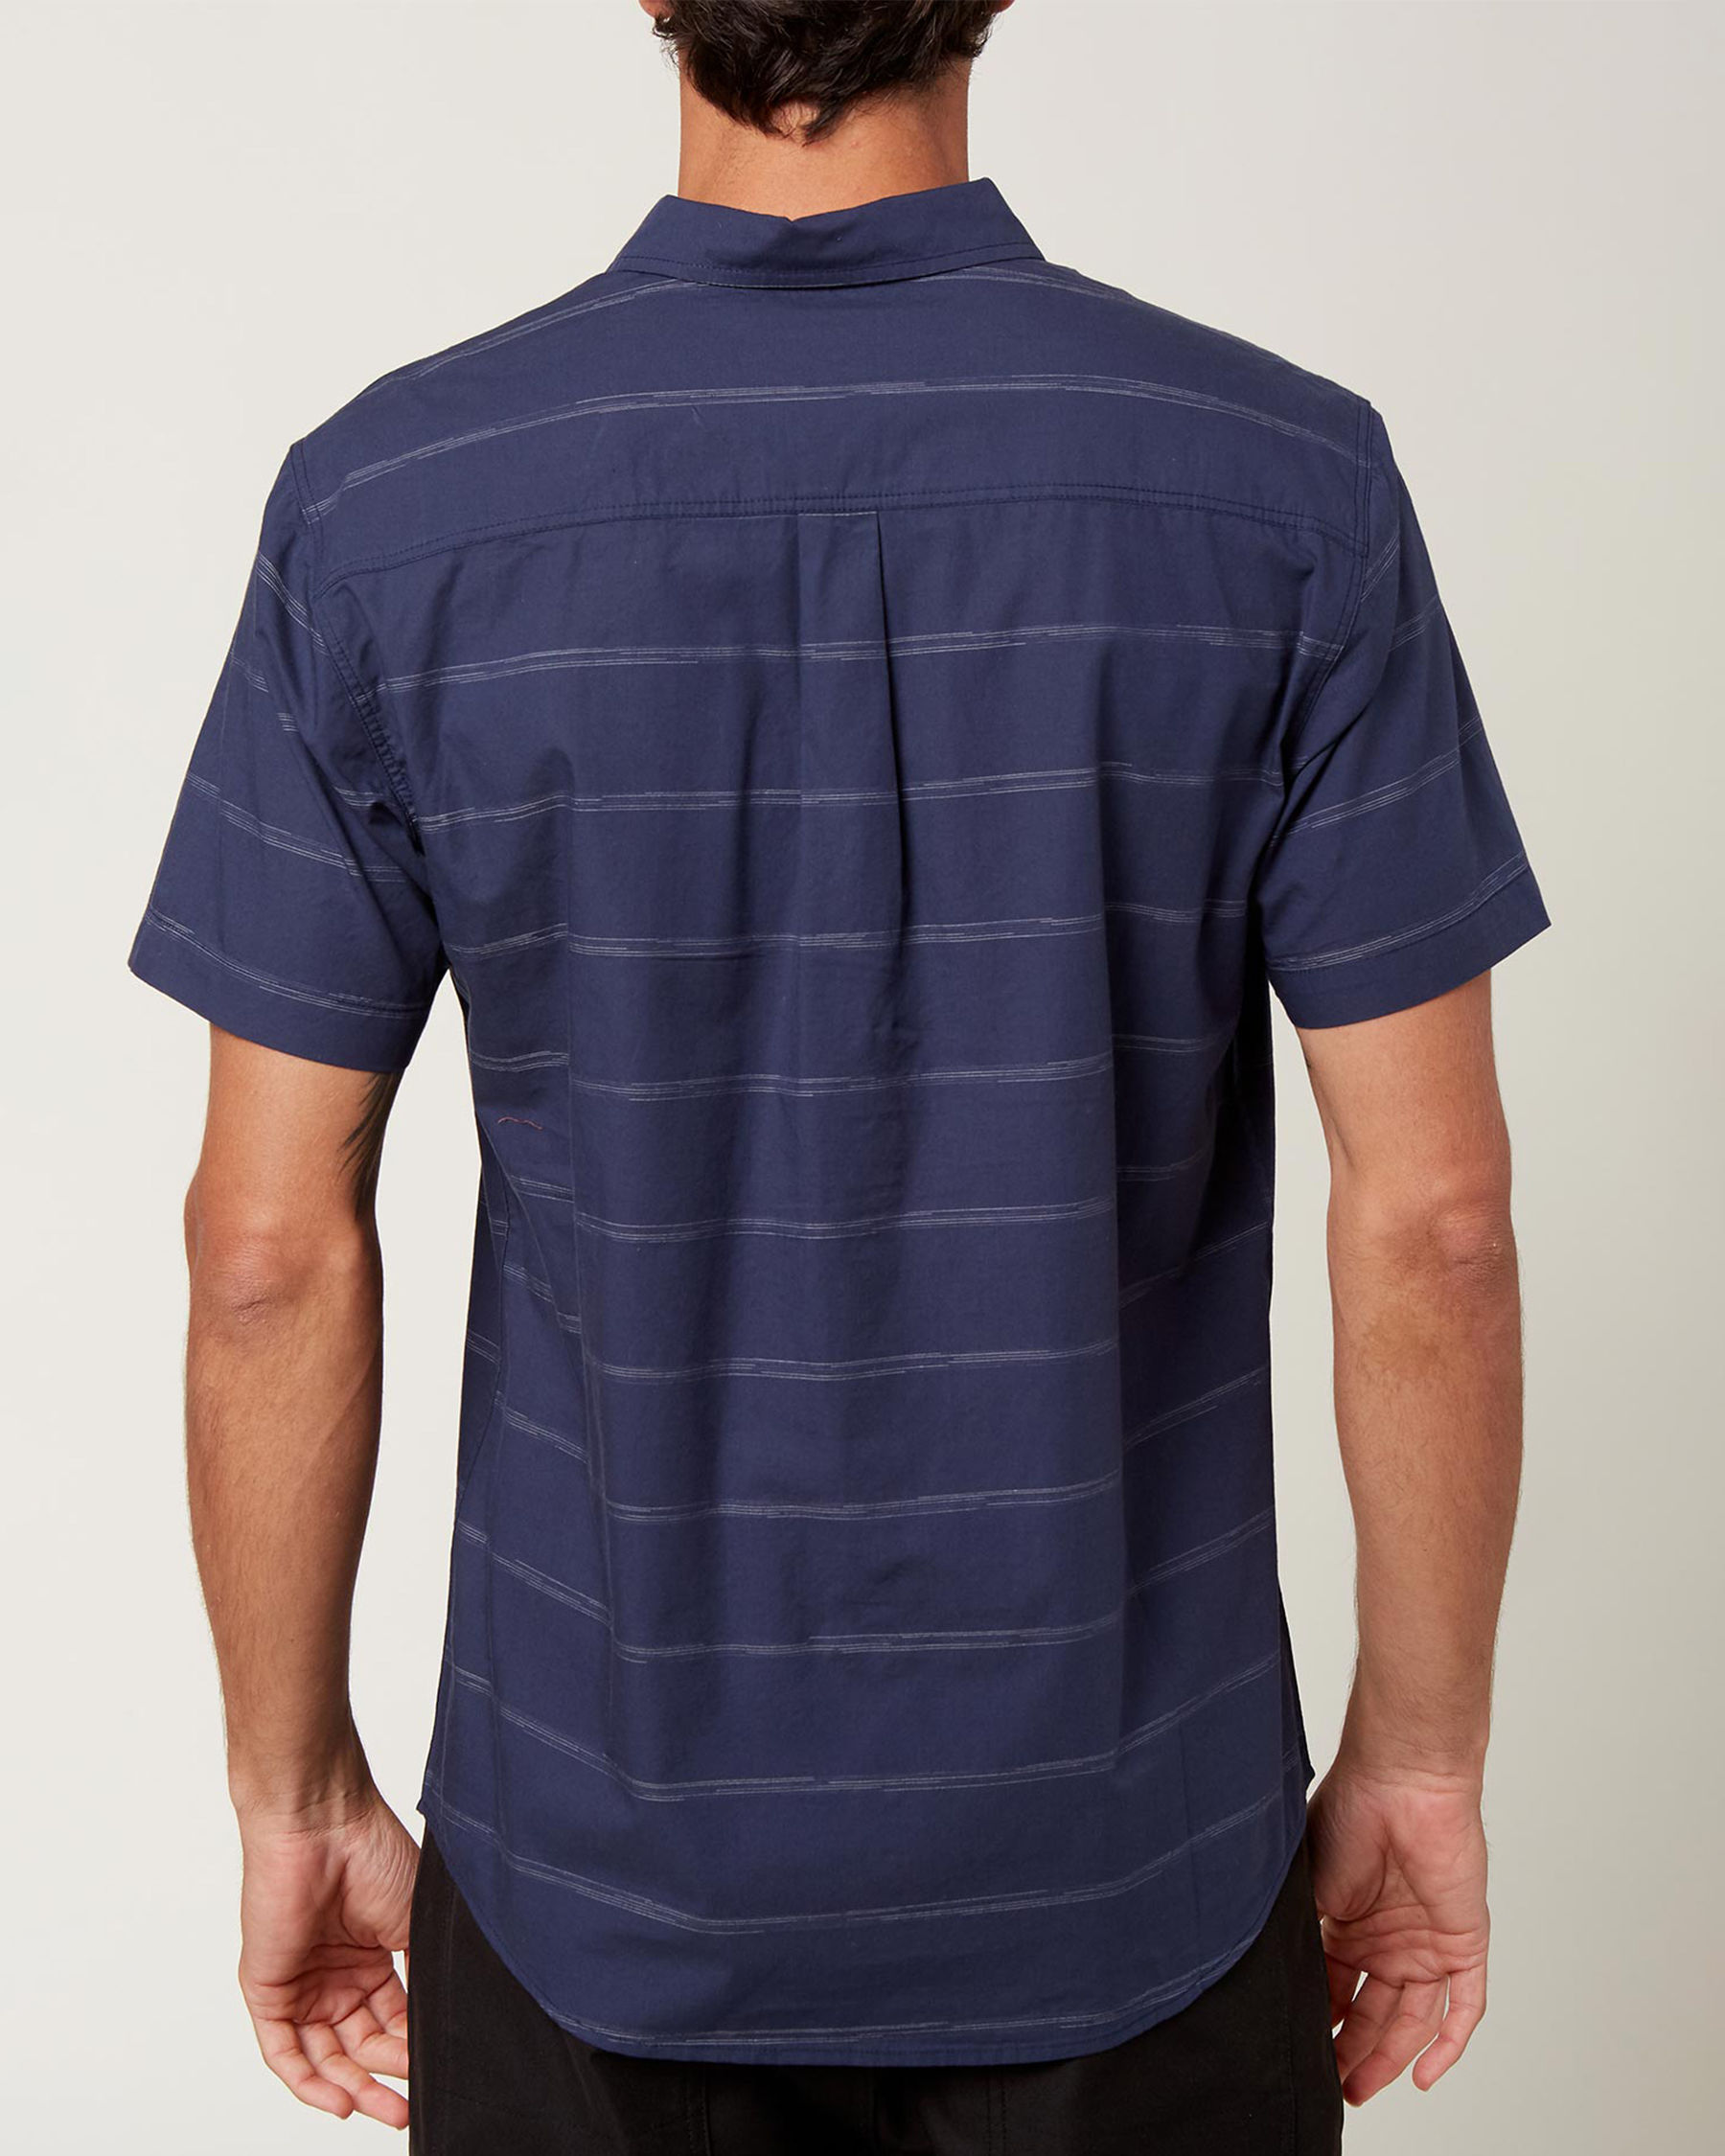 O'NEILL Chemise manches courtes IMPERIAL STRIPE Rayures marines SP1104110 - Voir2